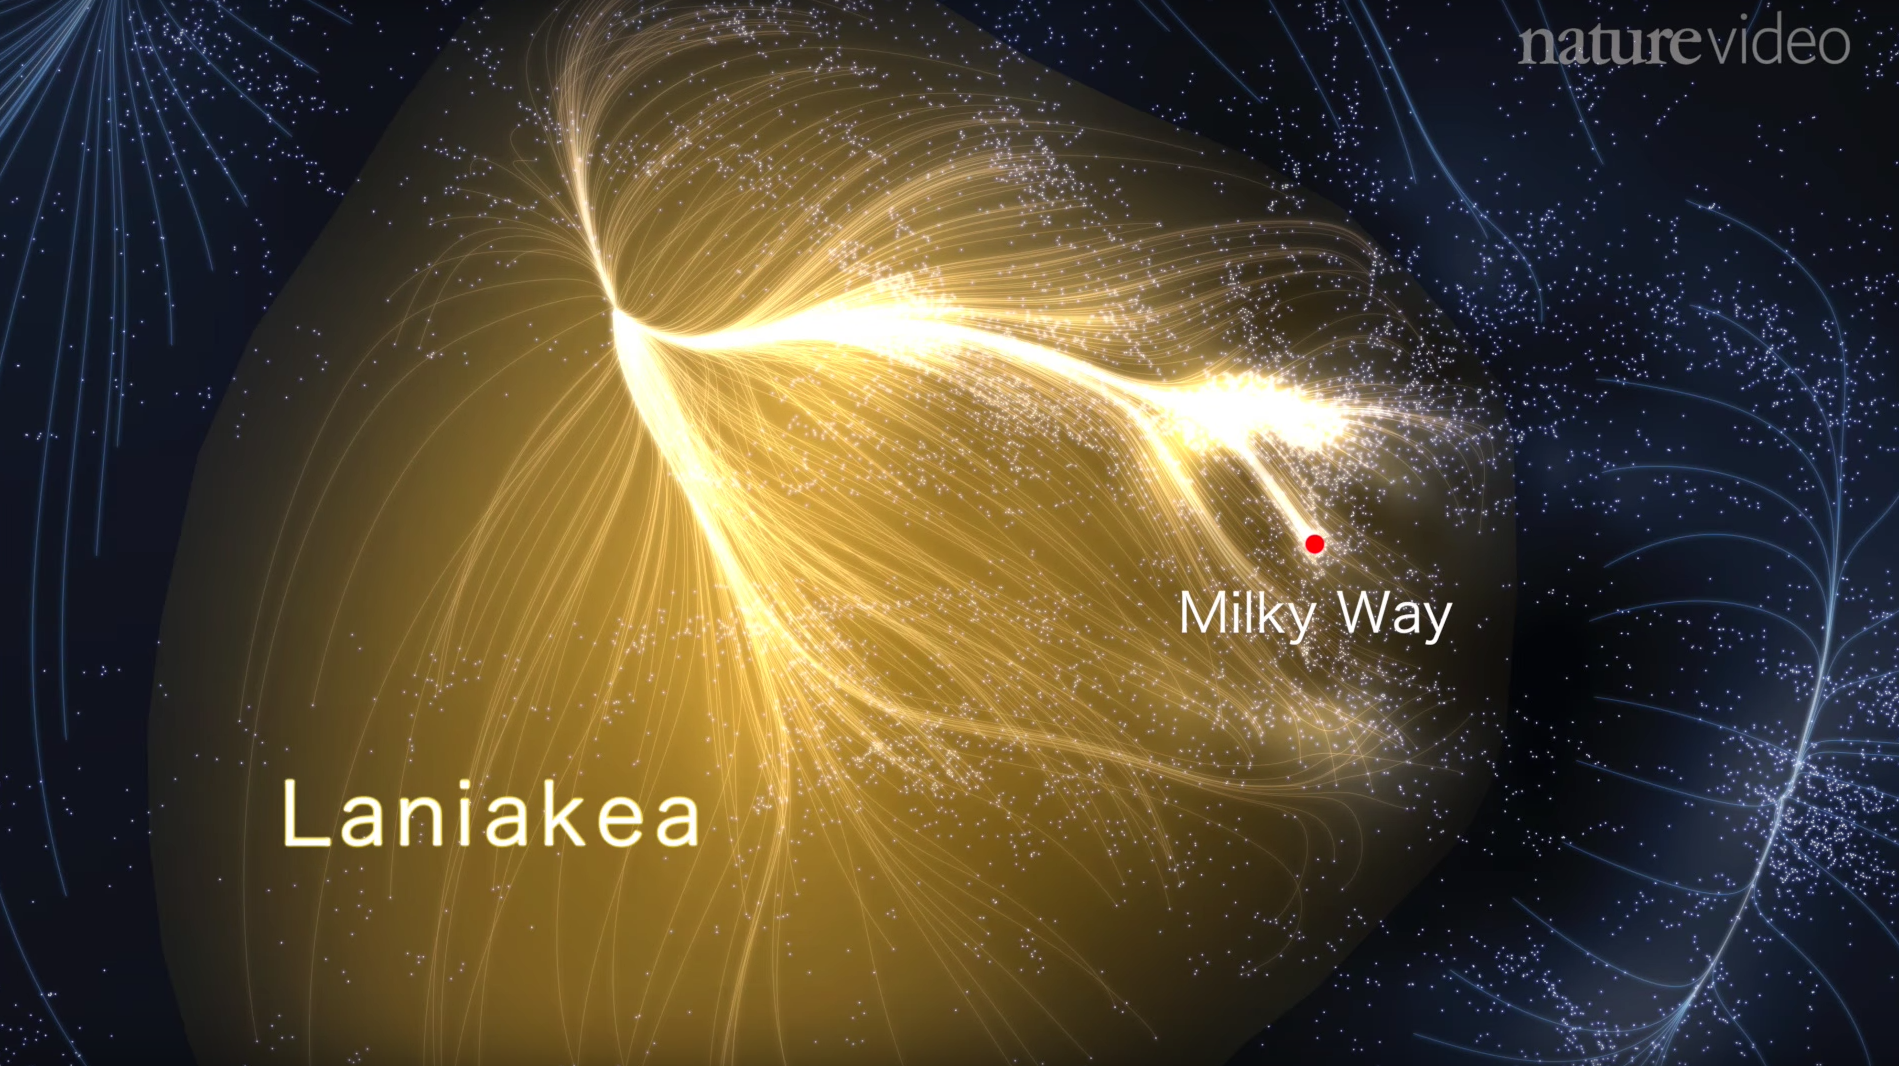 The Milky Way belongs into the Laniakea supercluster. Image: Tully et al, Nature, 2014.